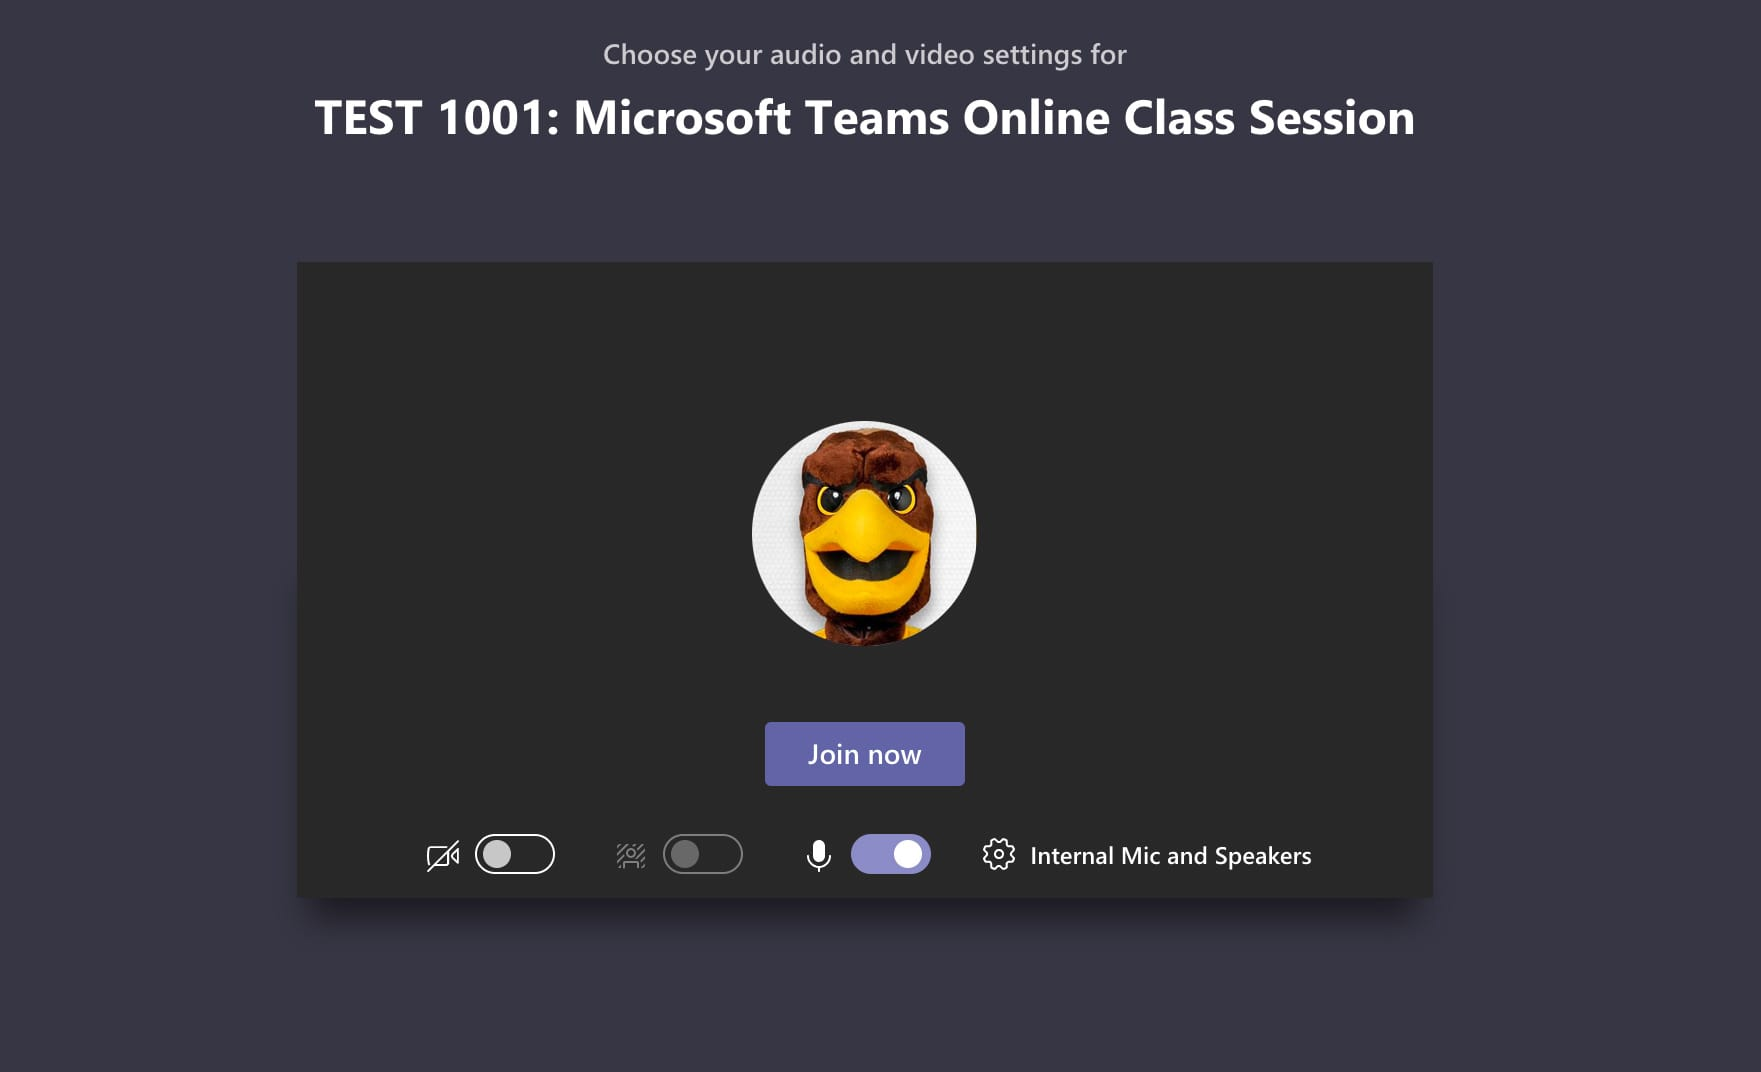 Audio Video settings for Microsoft Teams